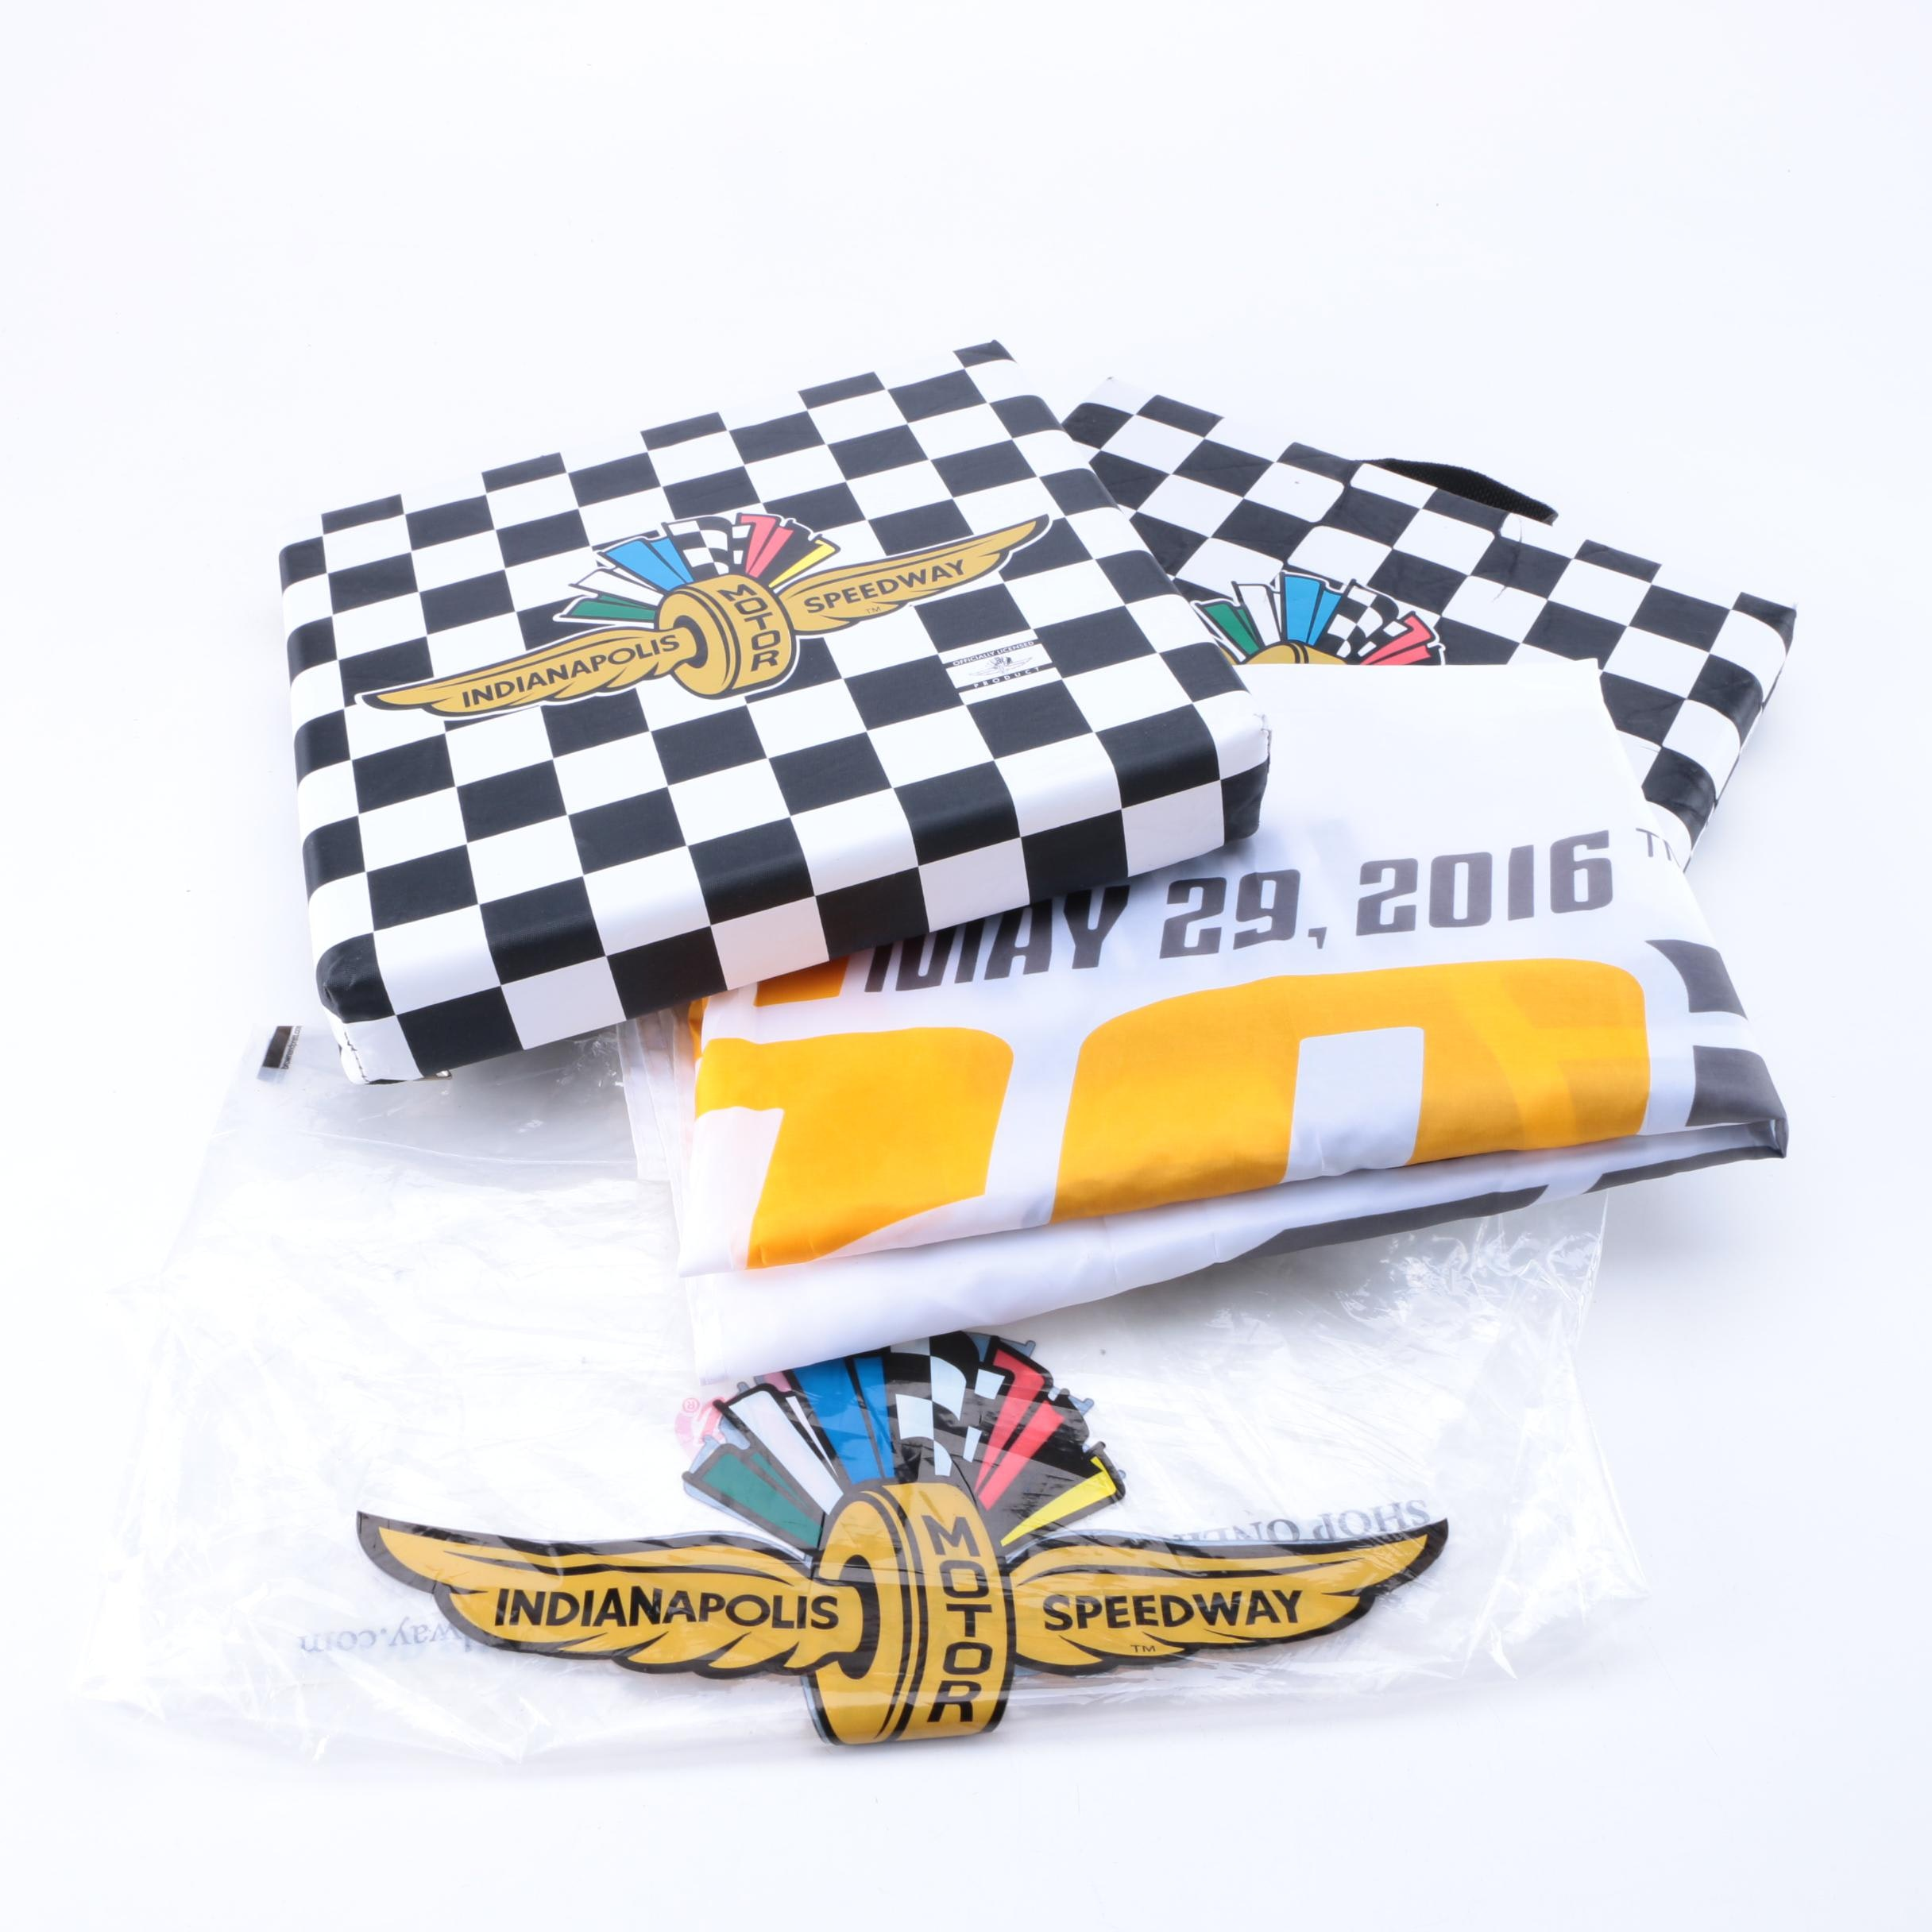 Indy 500 Flag and Seat Cushions